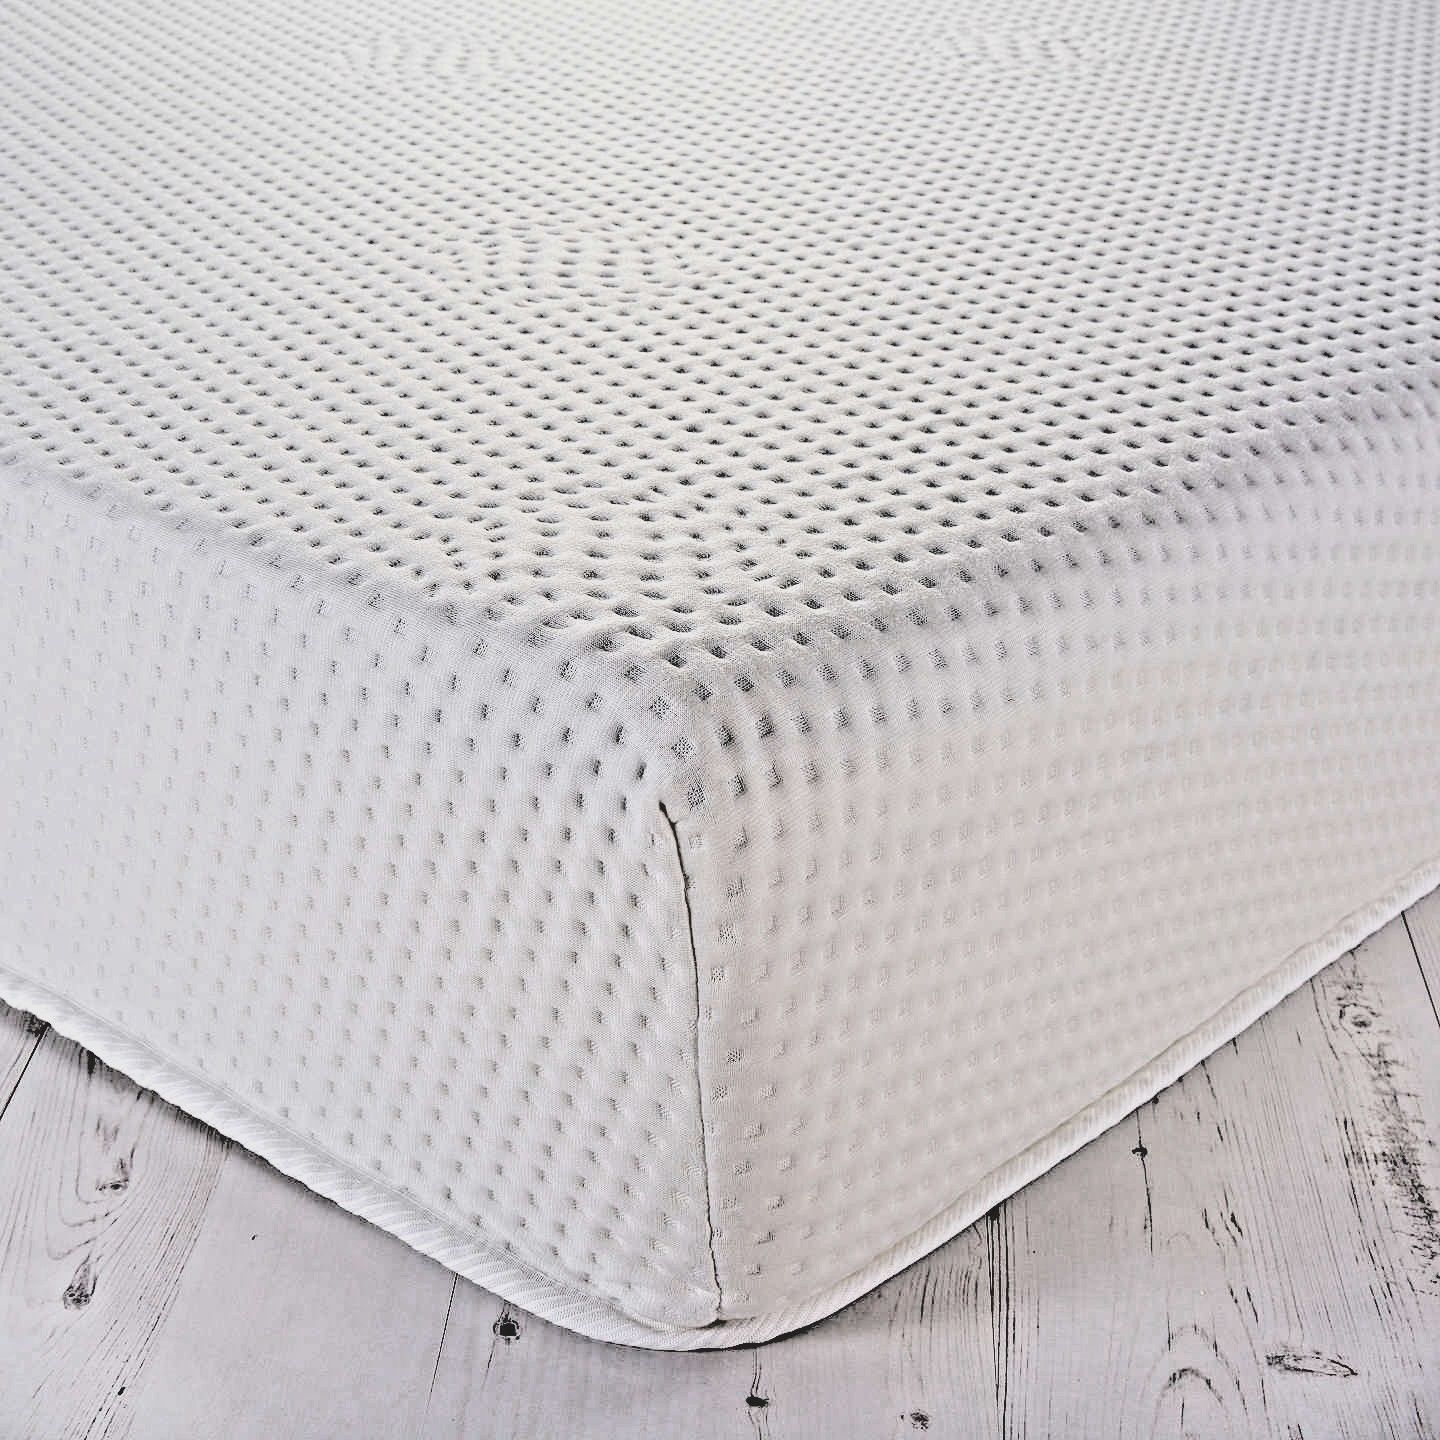 COOL TOUCH MEMORY FOAM MATTRESS TOPPERS WITH ZIPPED COVER EASY TO REMOVE & WASH